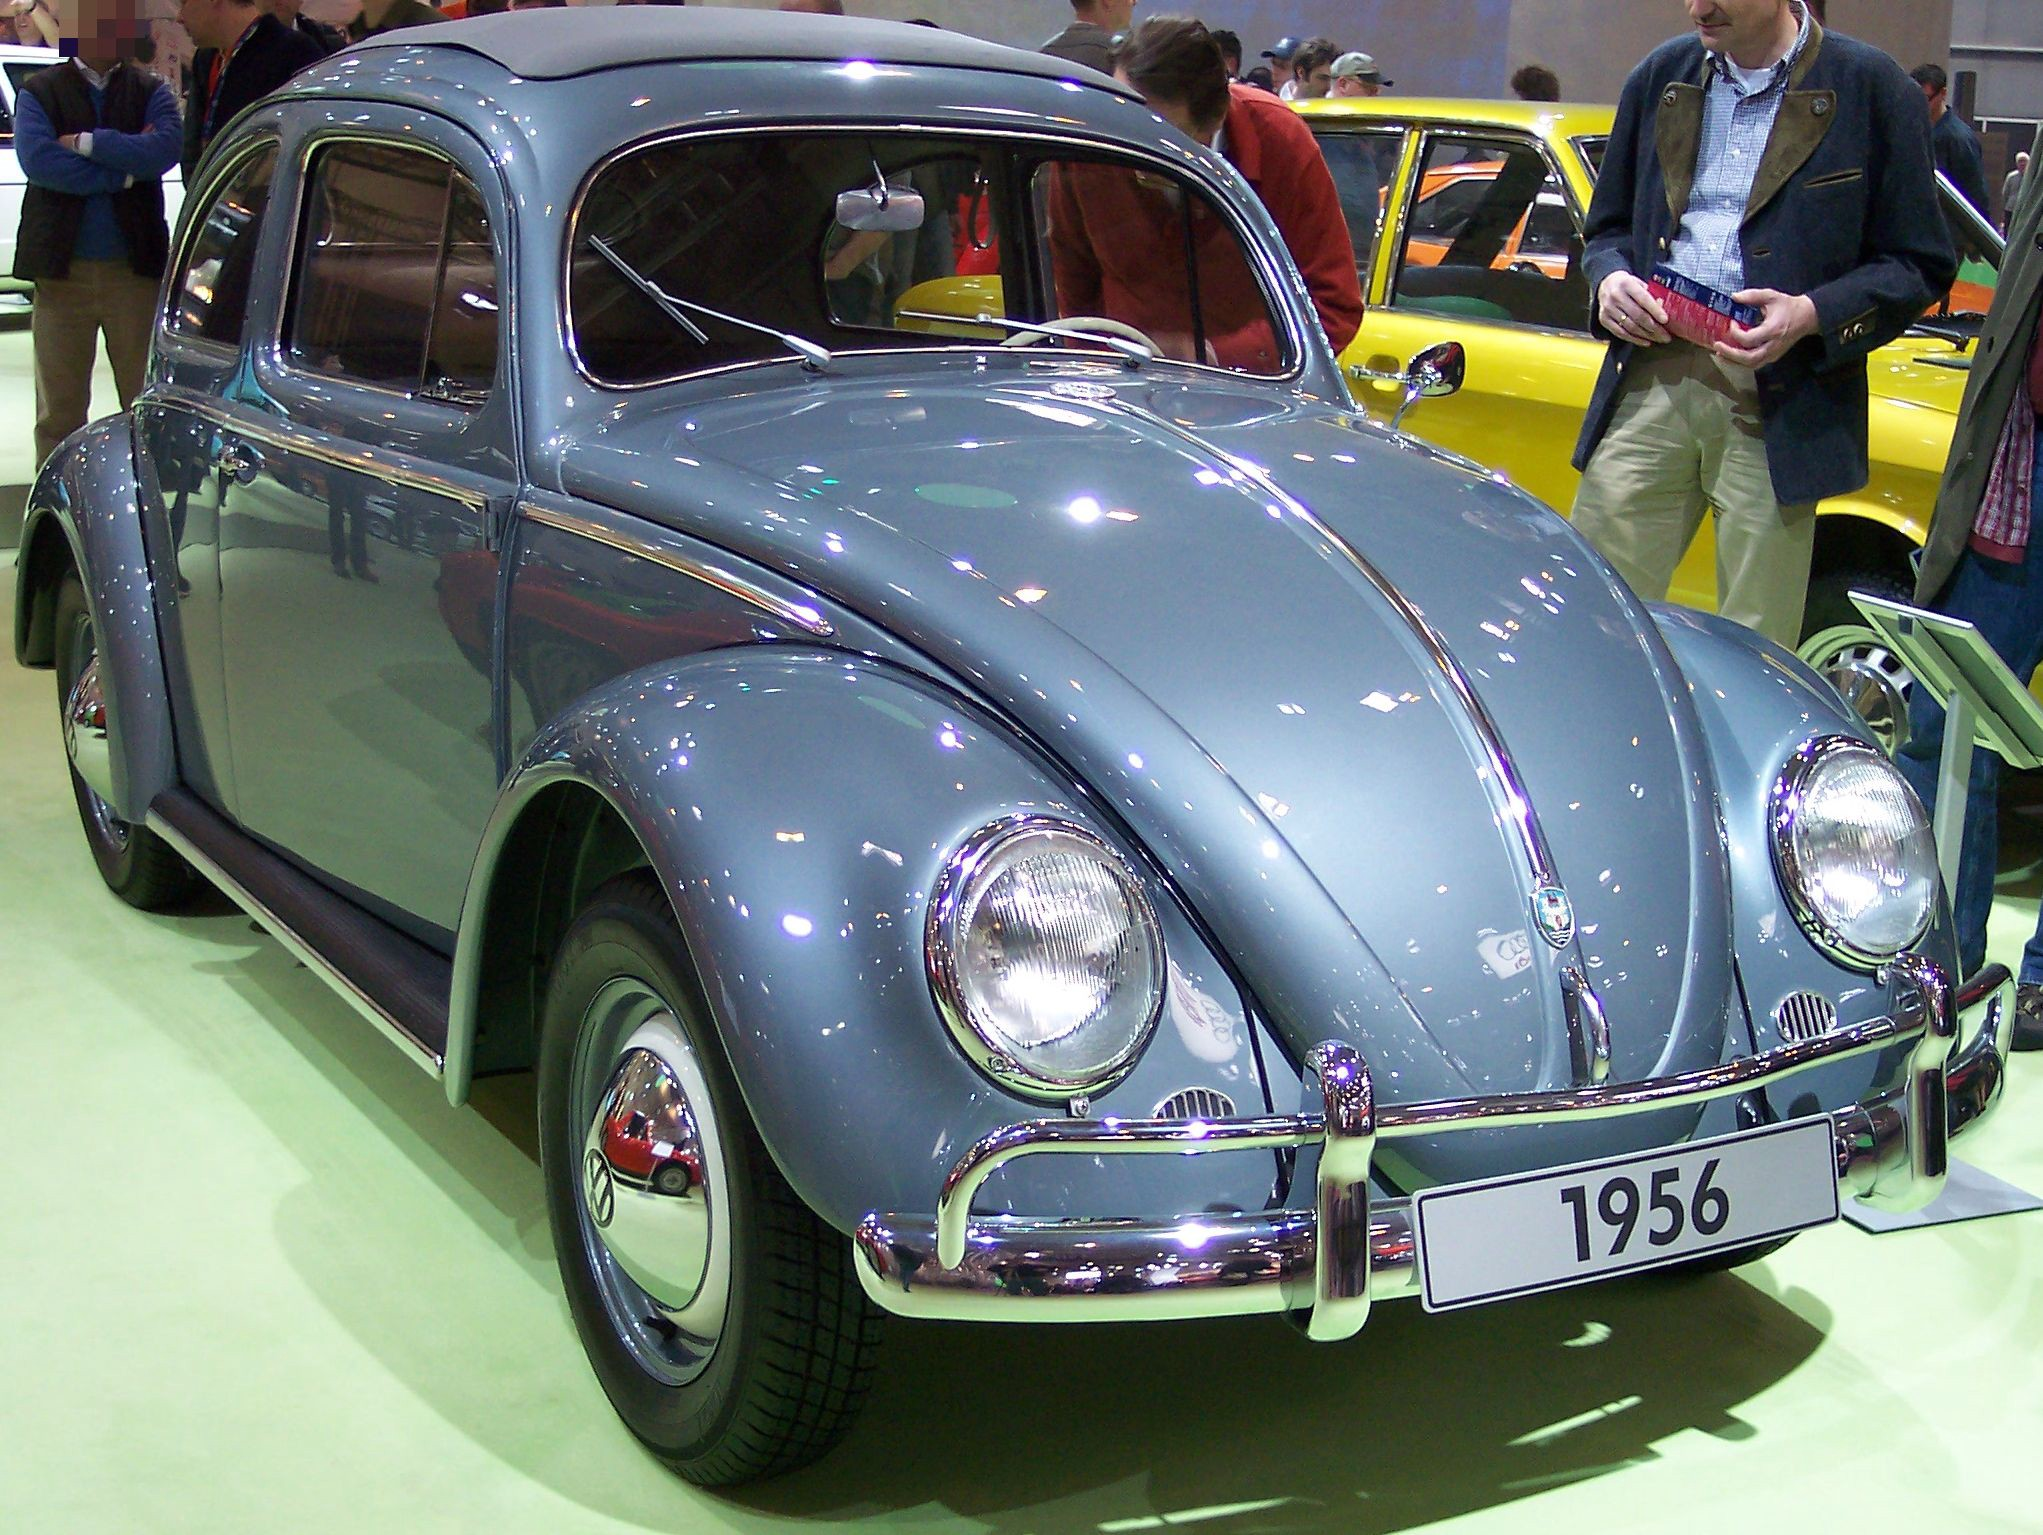 A VW Beetle from 1956